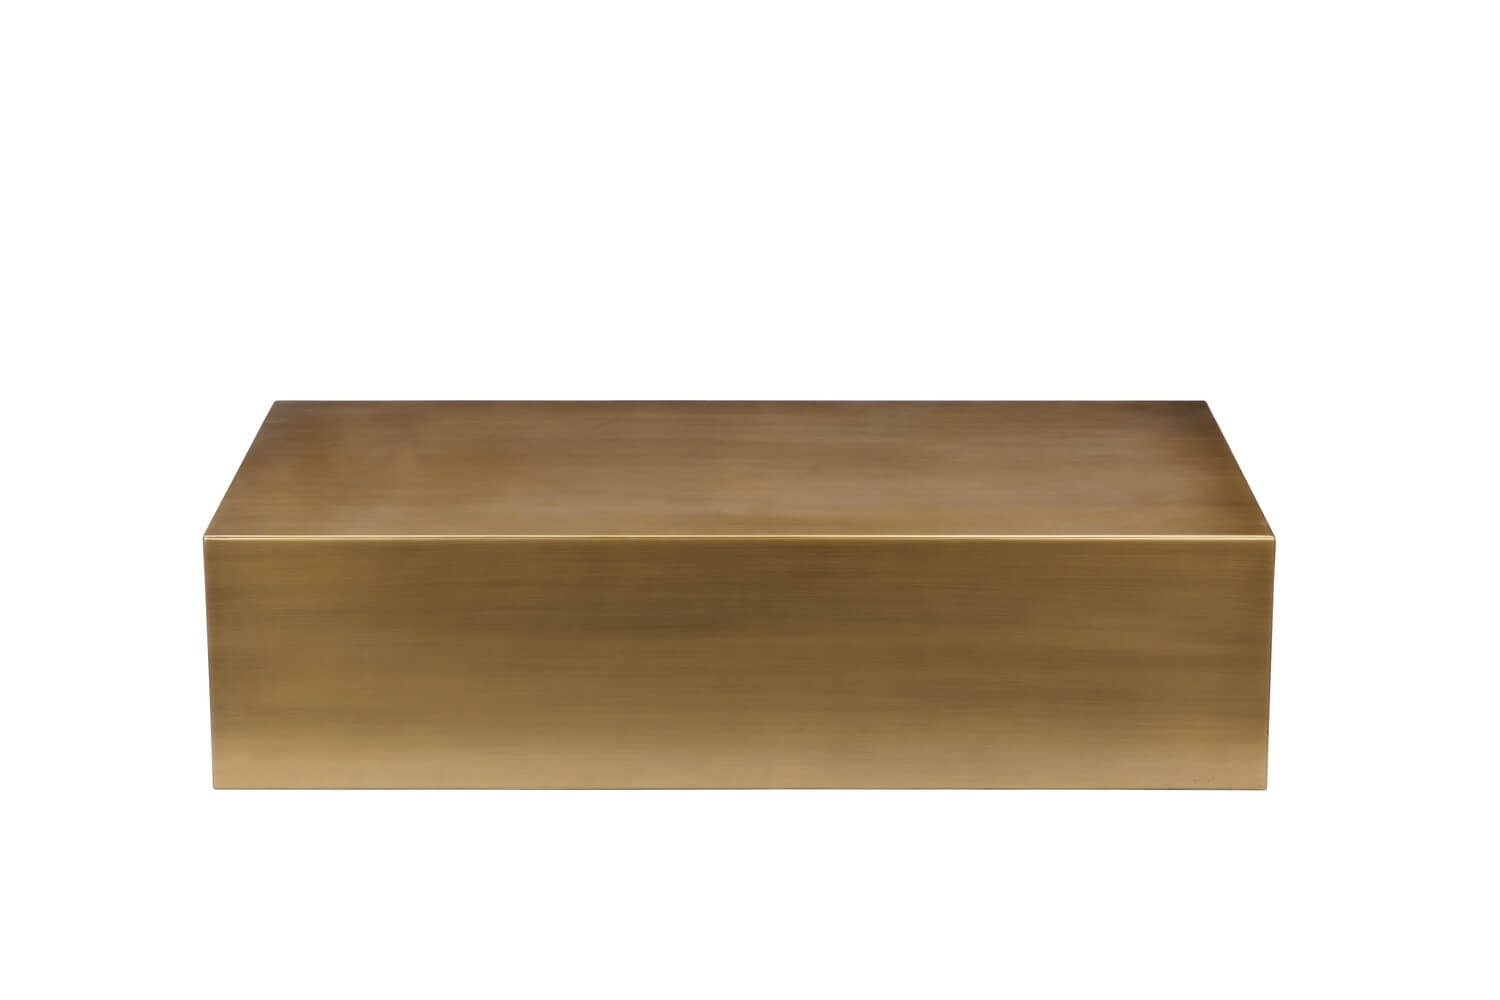 Brass Cube Coffee Table | Modern Furniture • Brickell Collection with regard to Brass Iron Cube Tables (Image 4 of 30)